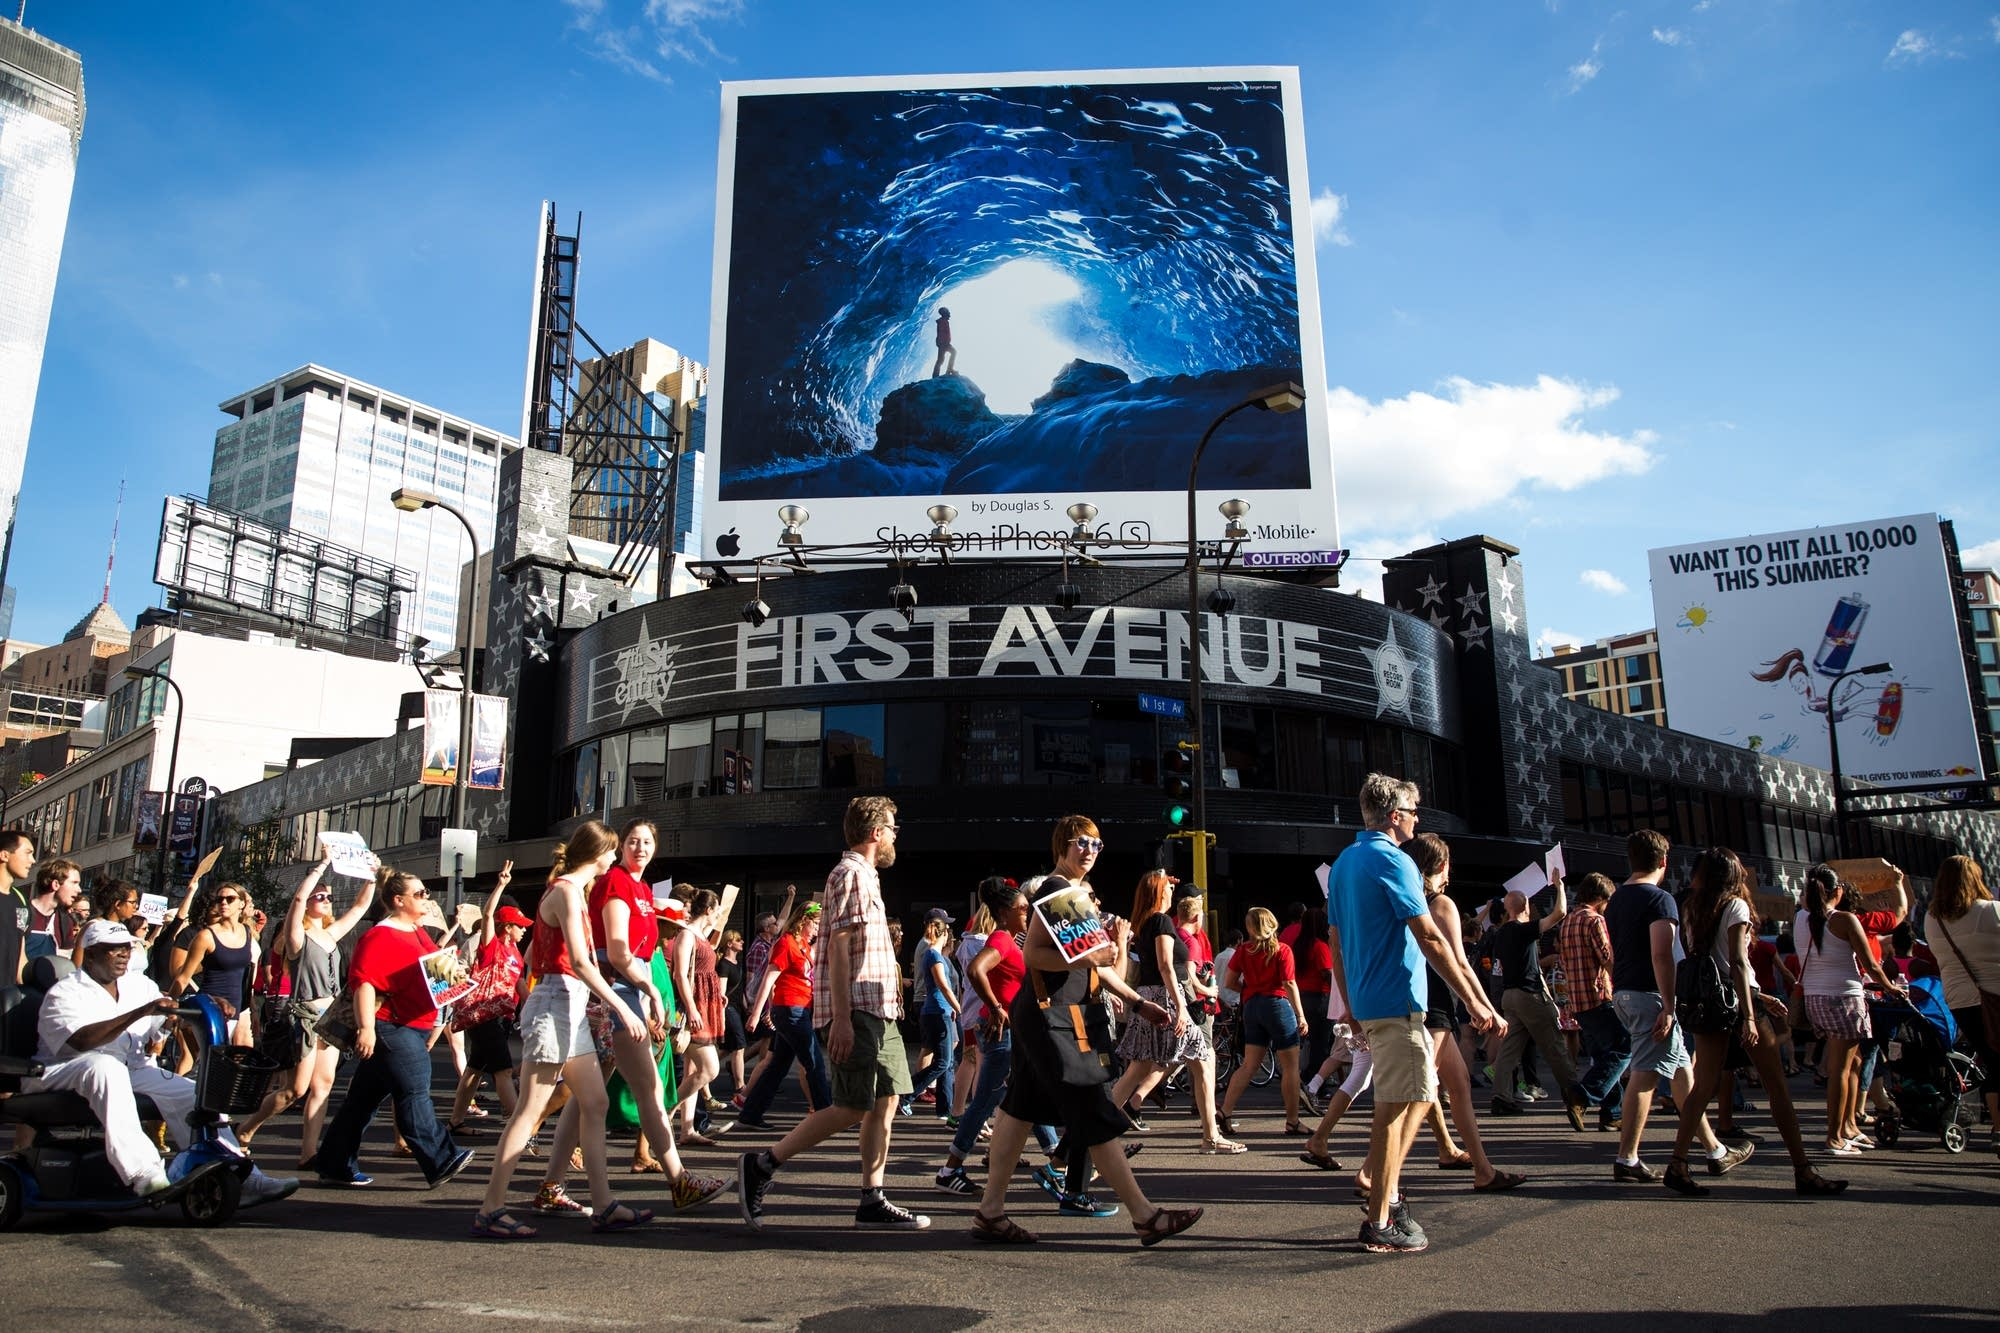 Protesters march past First Avenue.